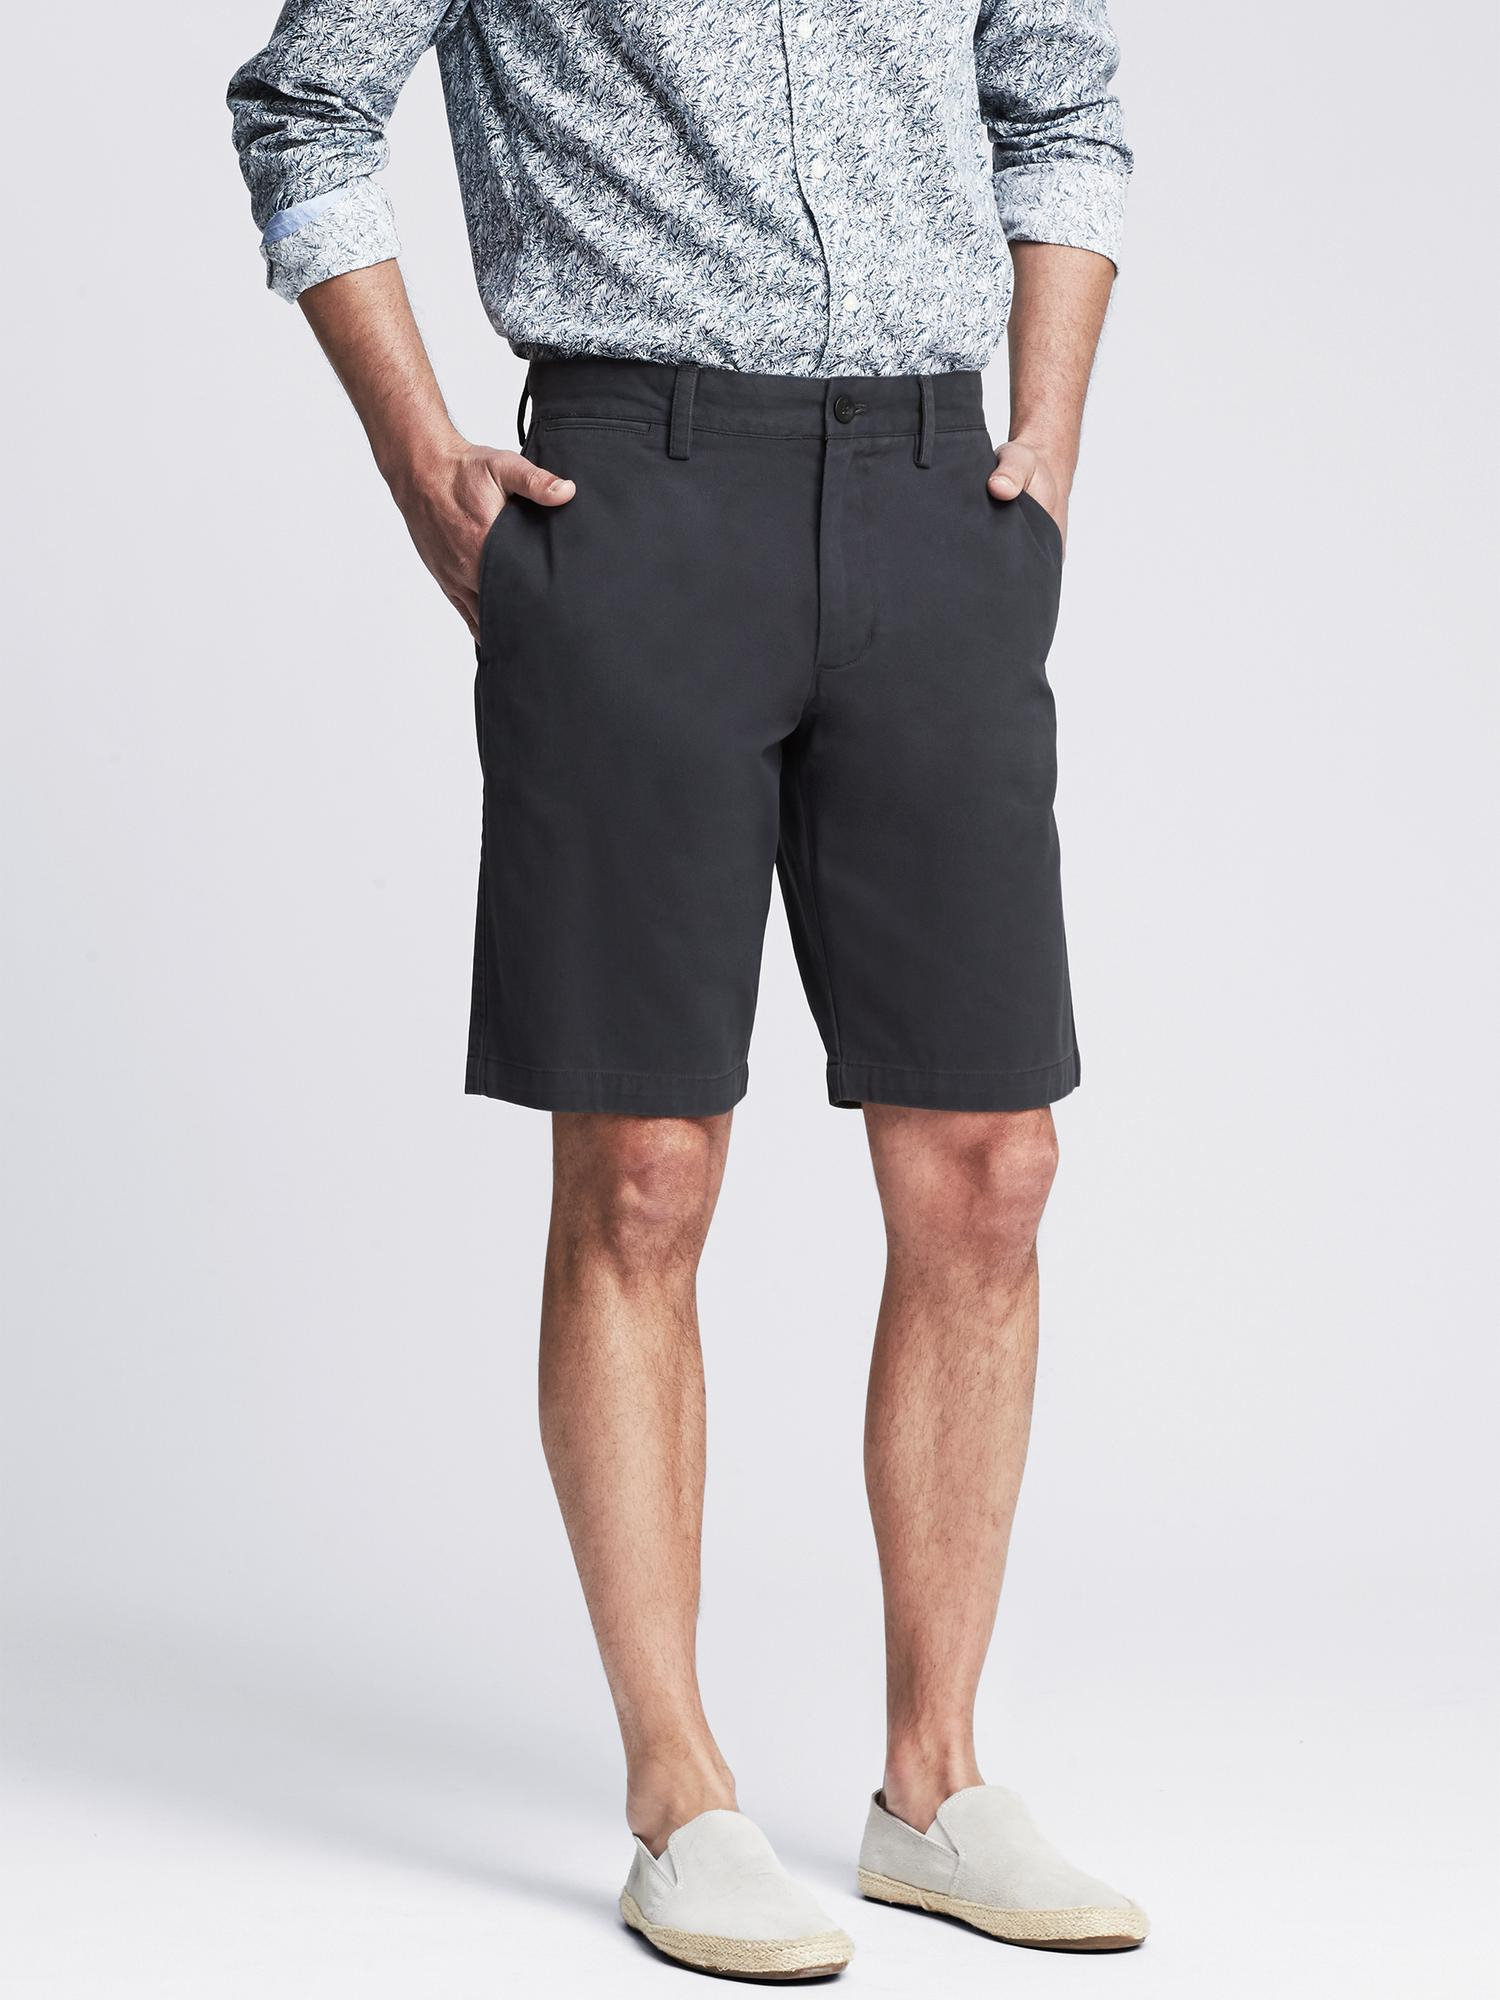 Discover fresh styles of classic men's shorts at Banana Republic. Find everything from our go-to slim fitting shorts for men to casual shorts in tailored style.